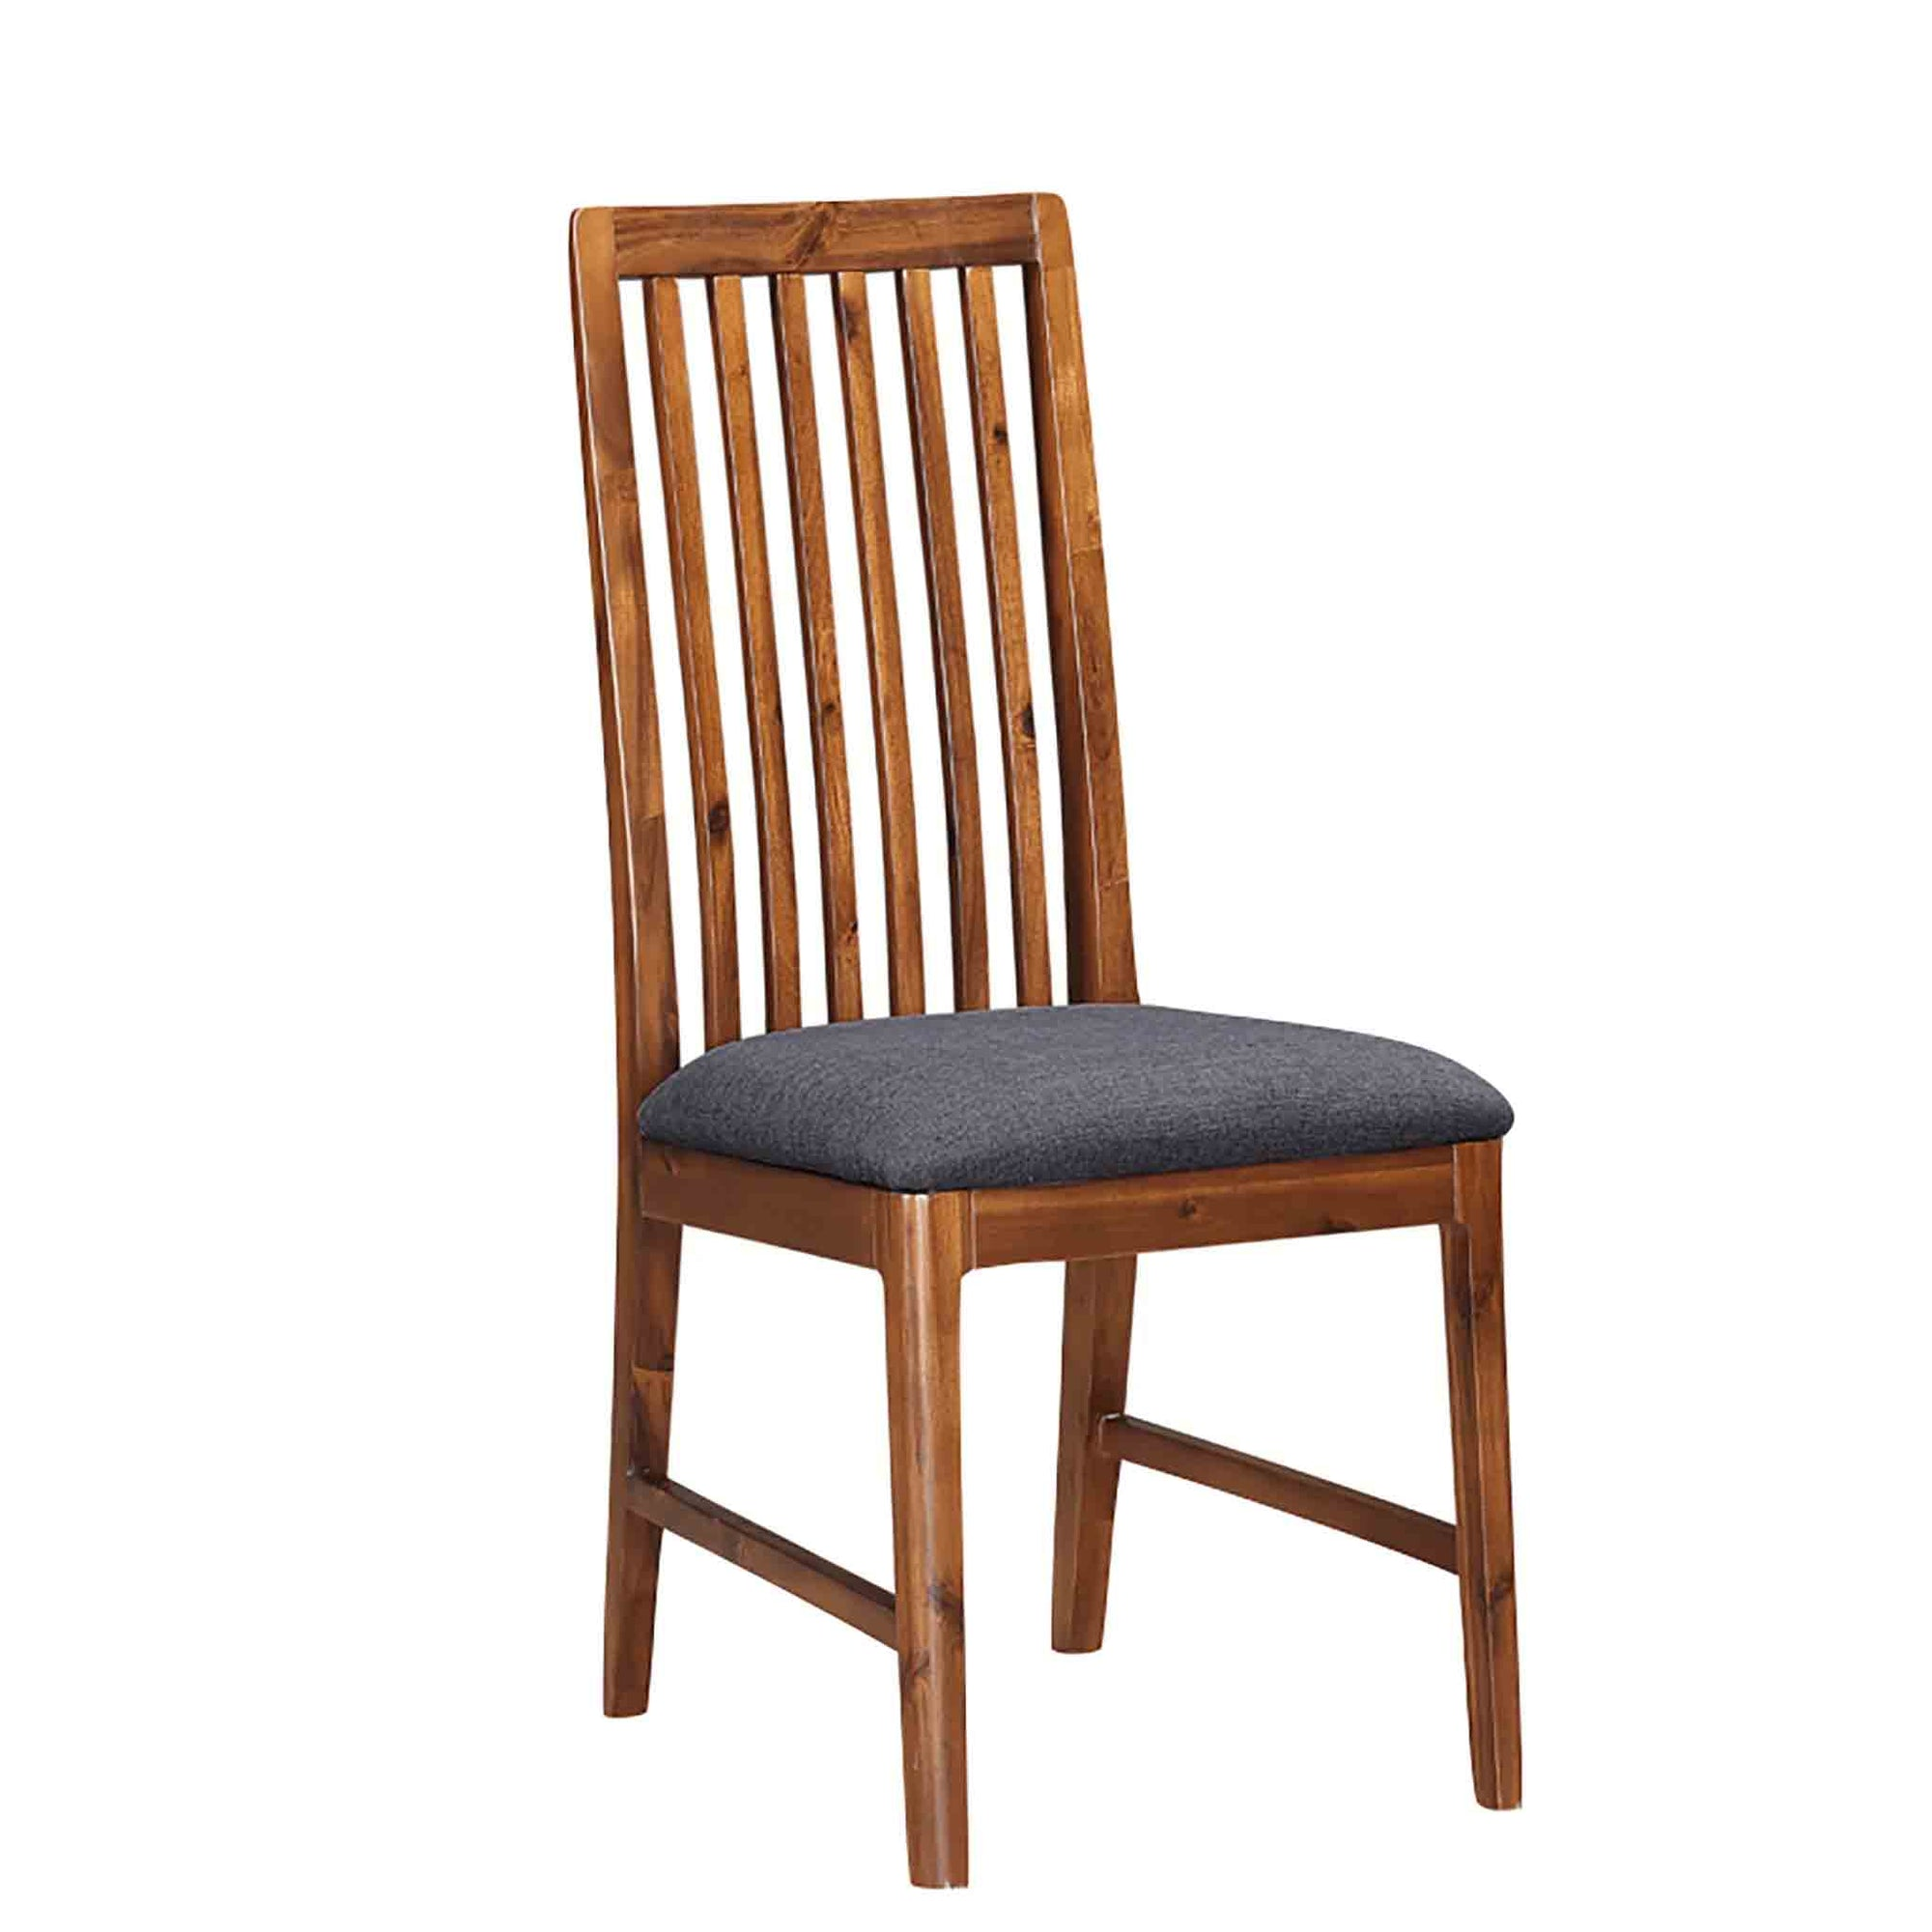 The Dunmore Acacia Dark Wood Dining Chair from Roseland Furniture